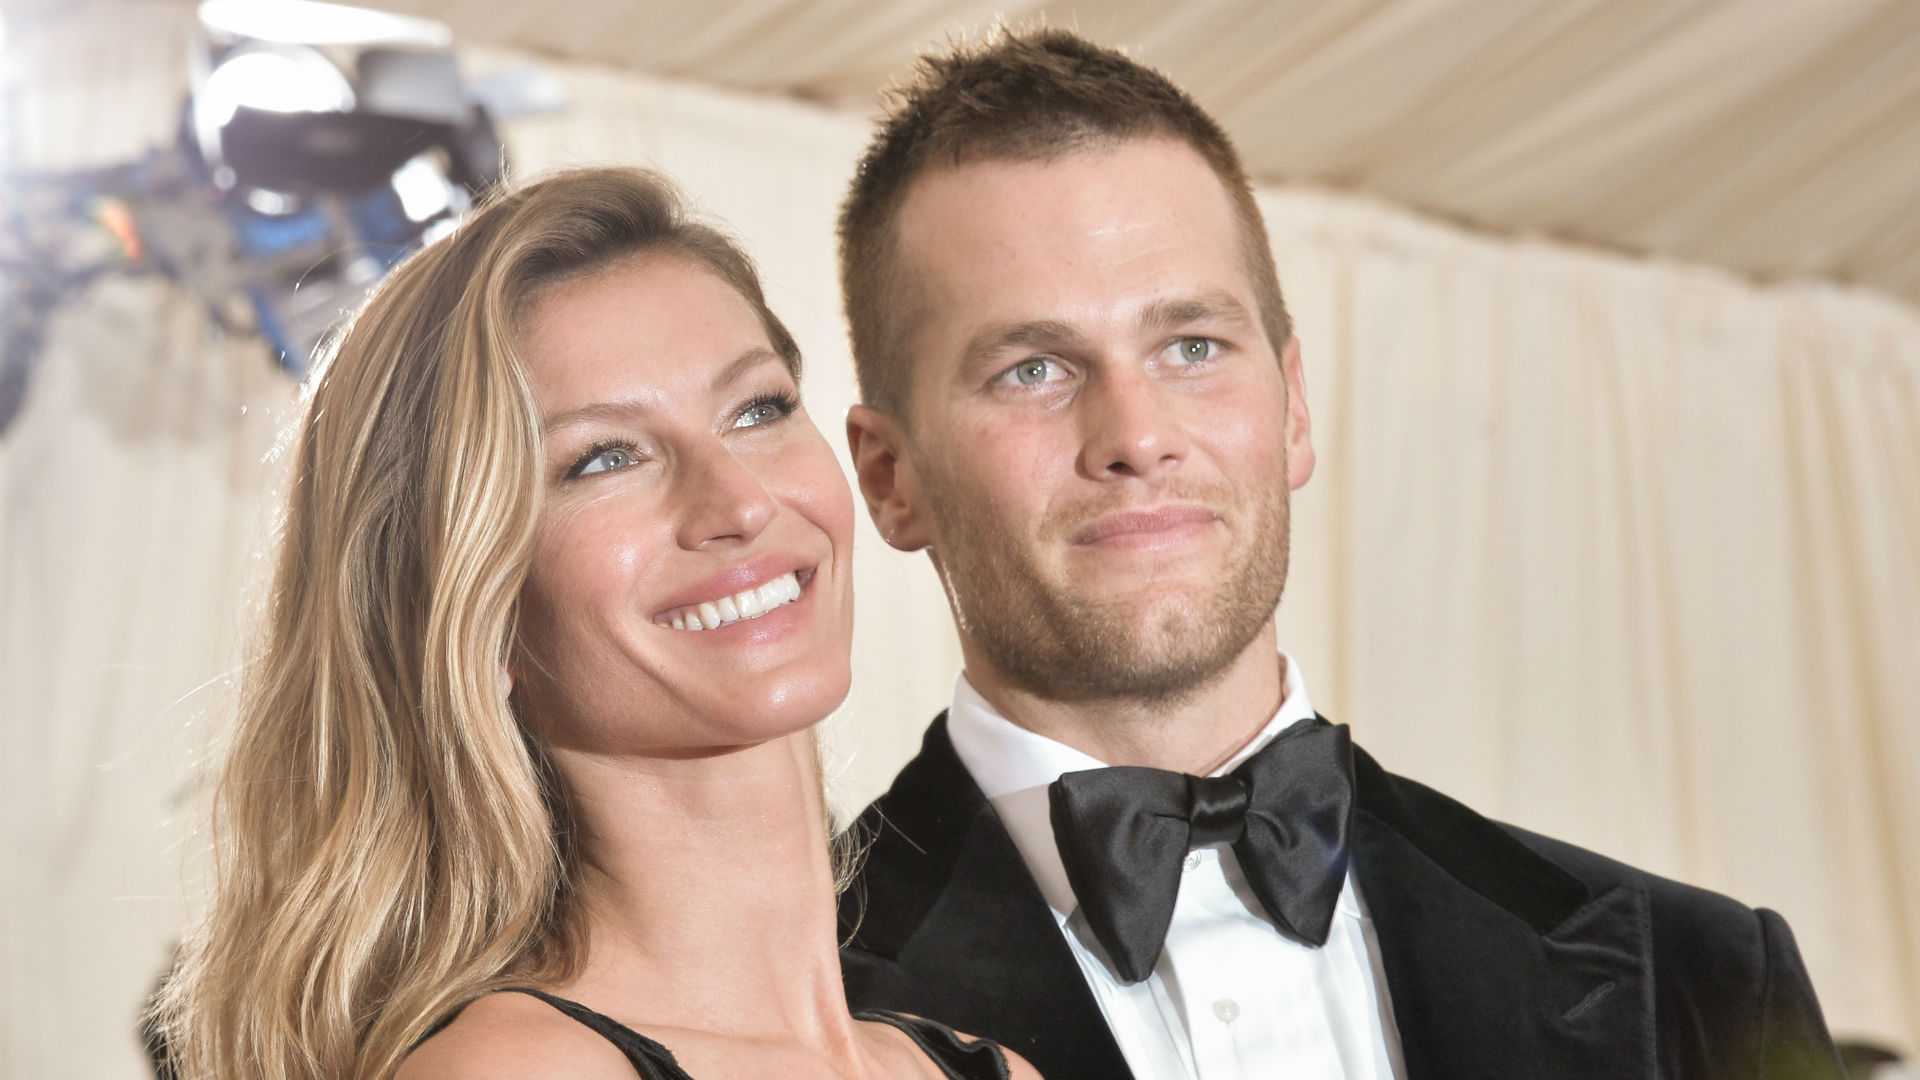 Brady-Tom-02242015-US-News-Getty-FTR